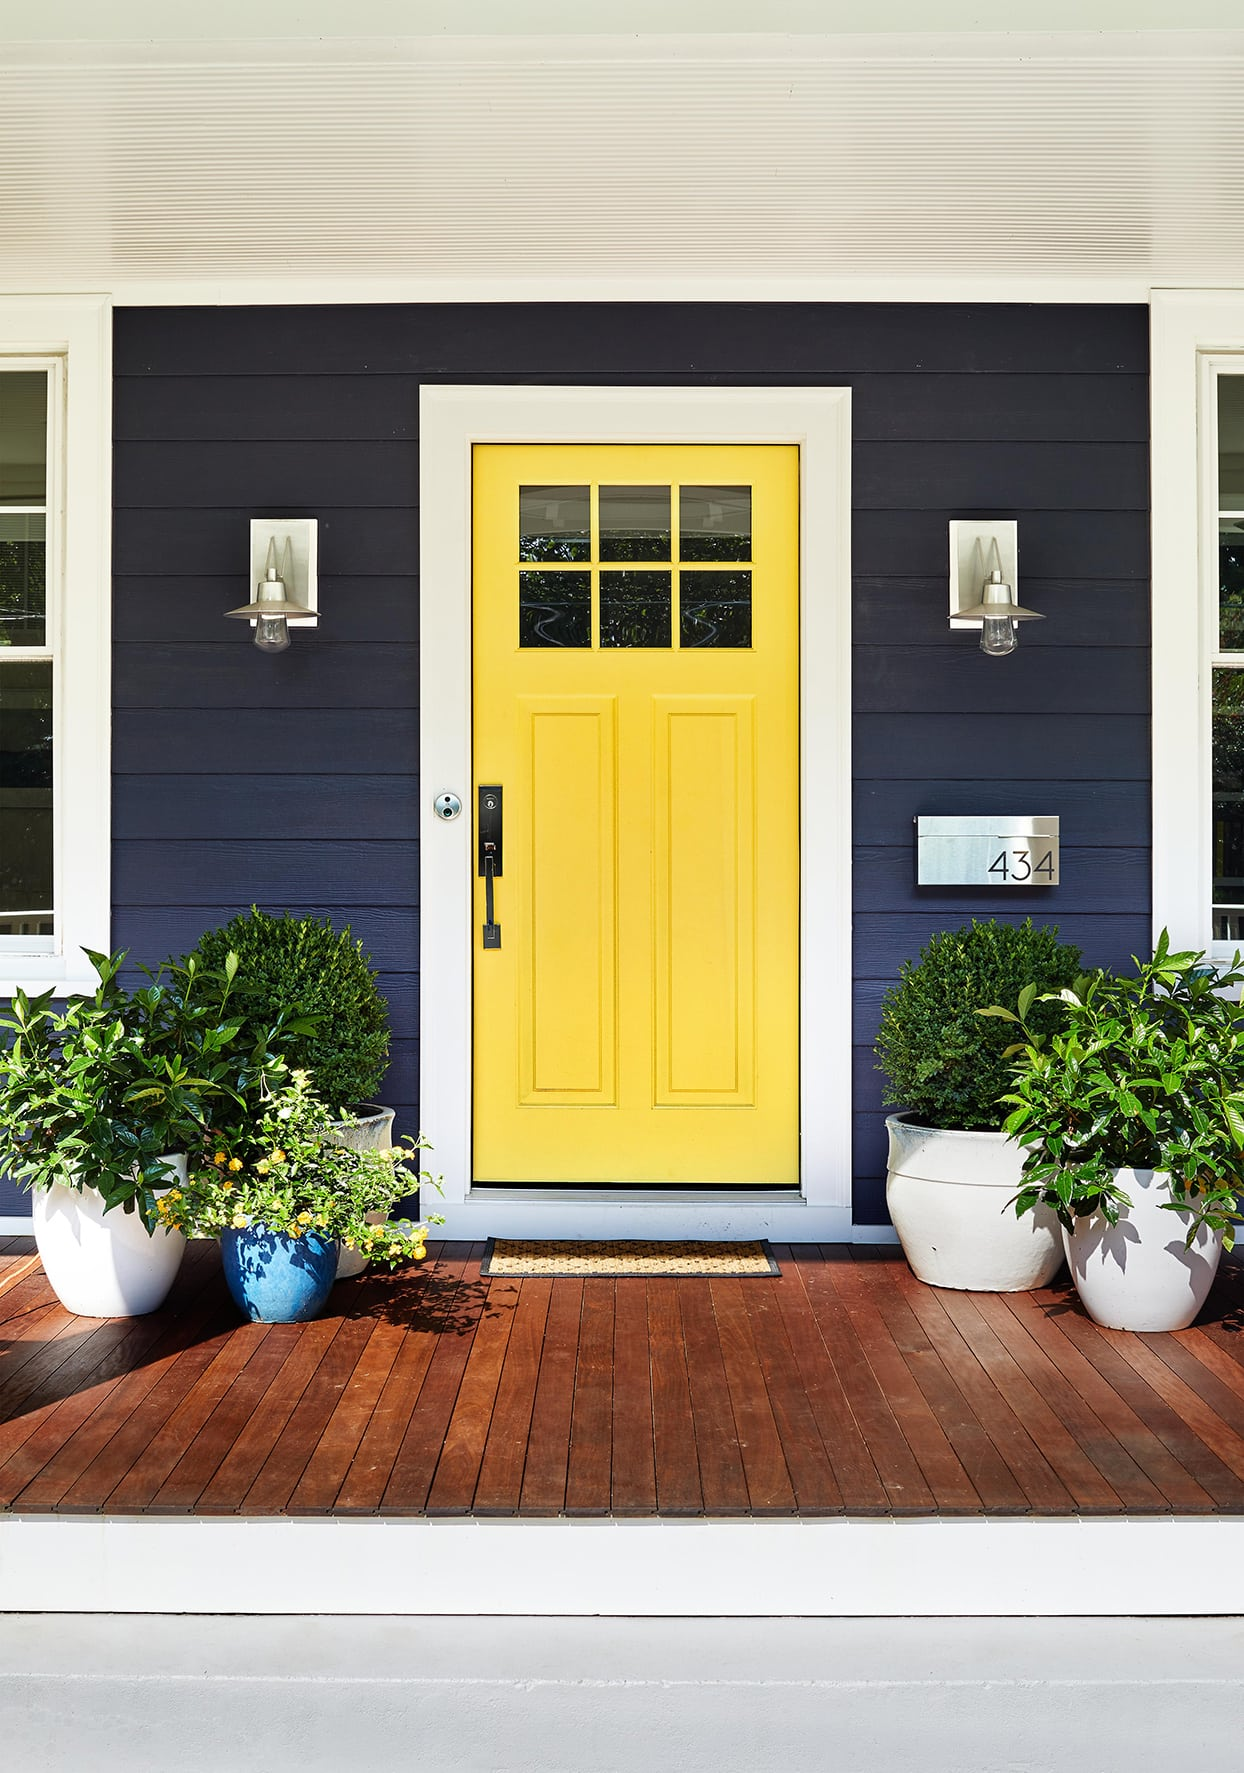 A house with navy side and a bright yellow door